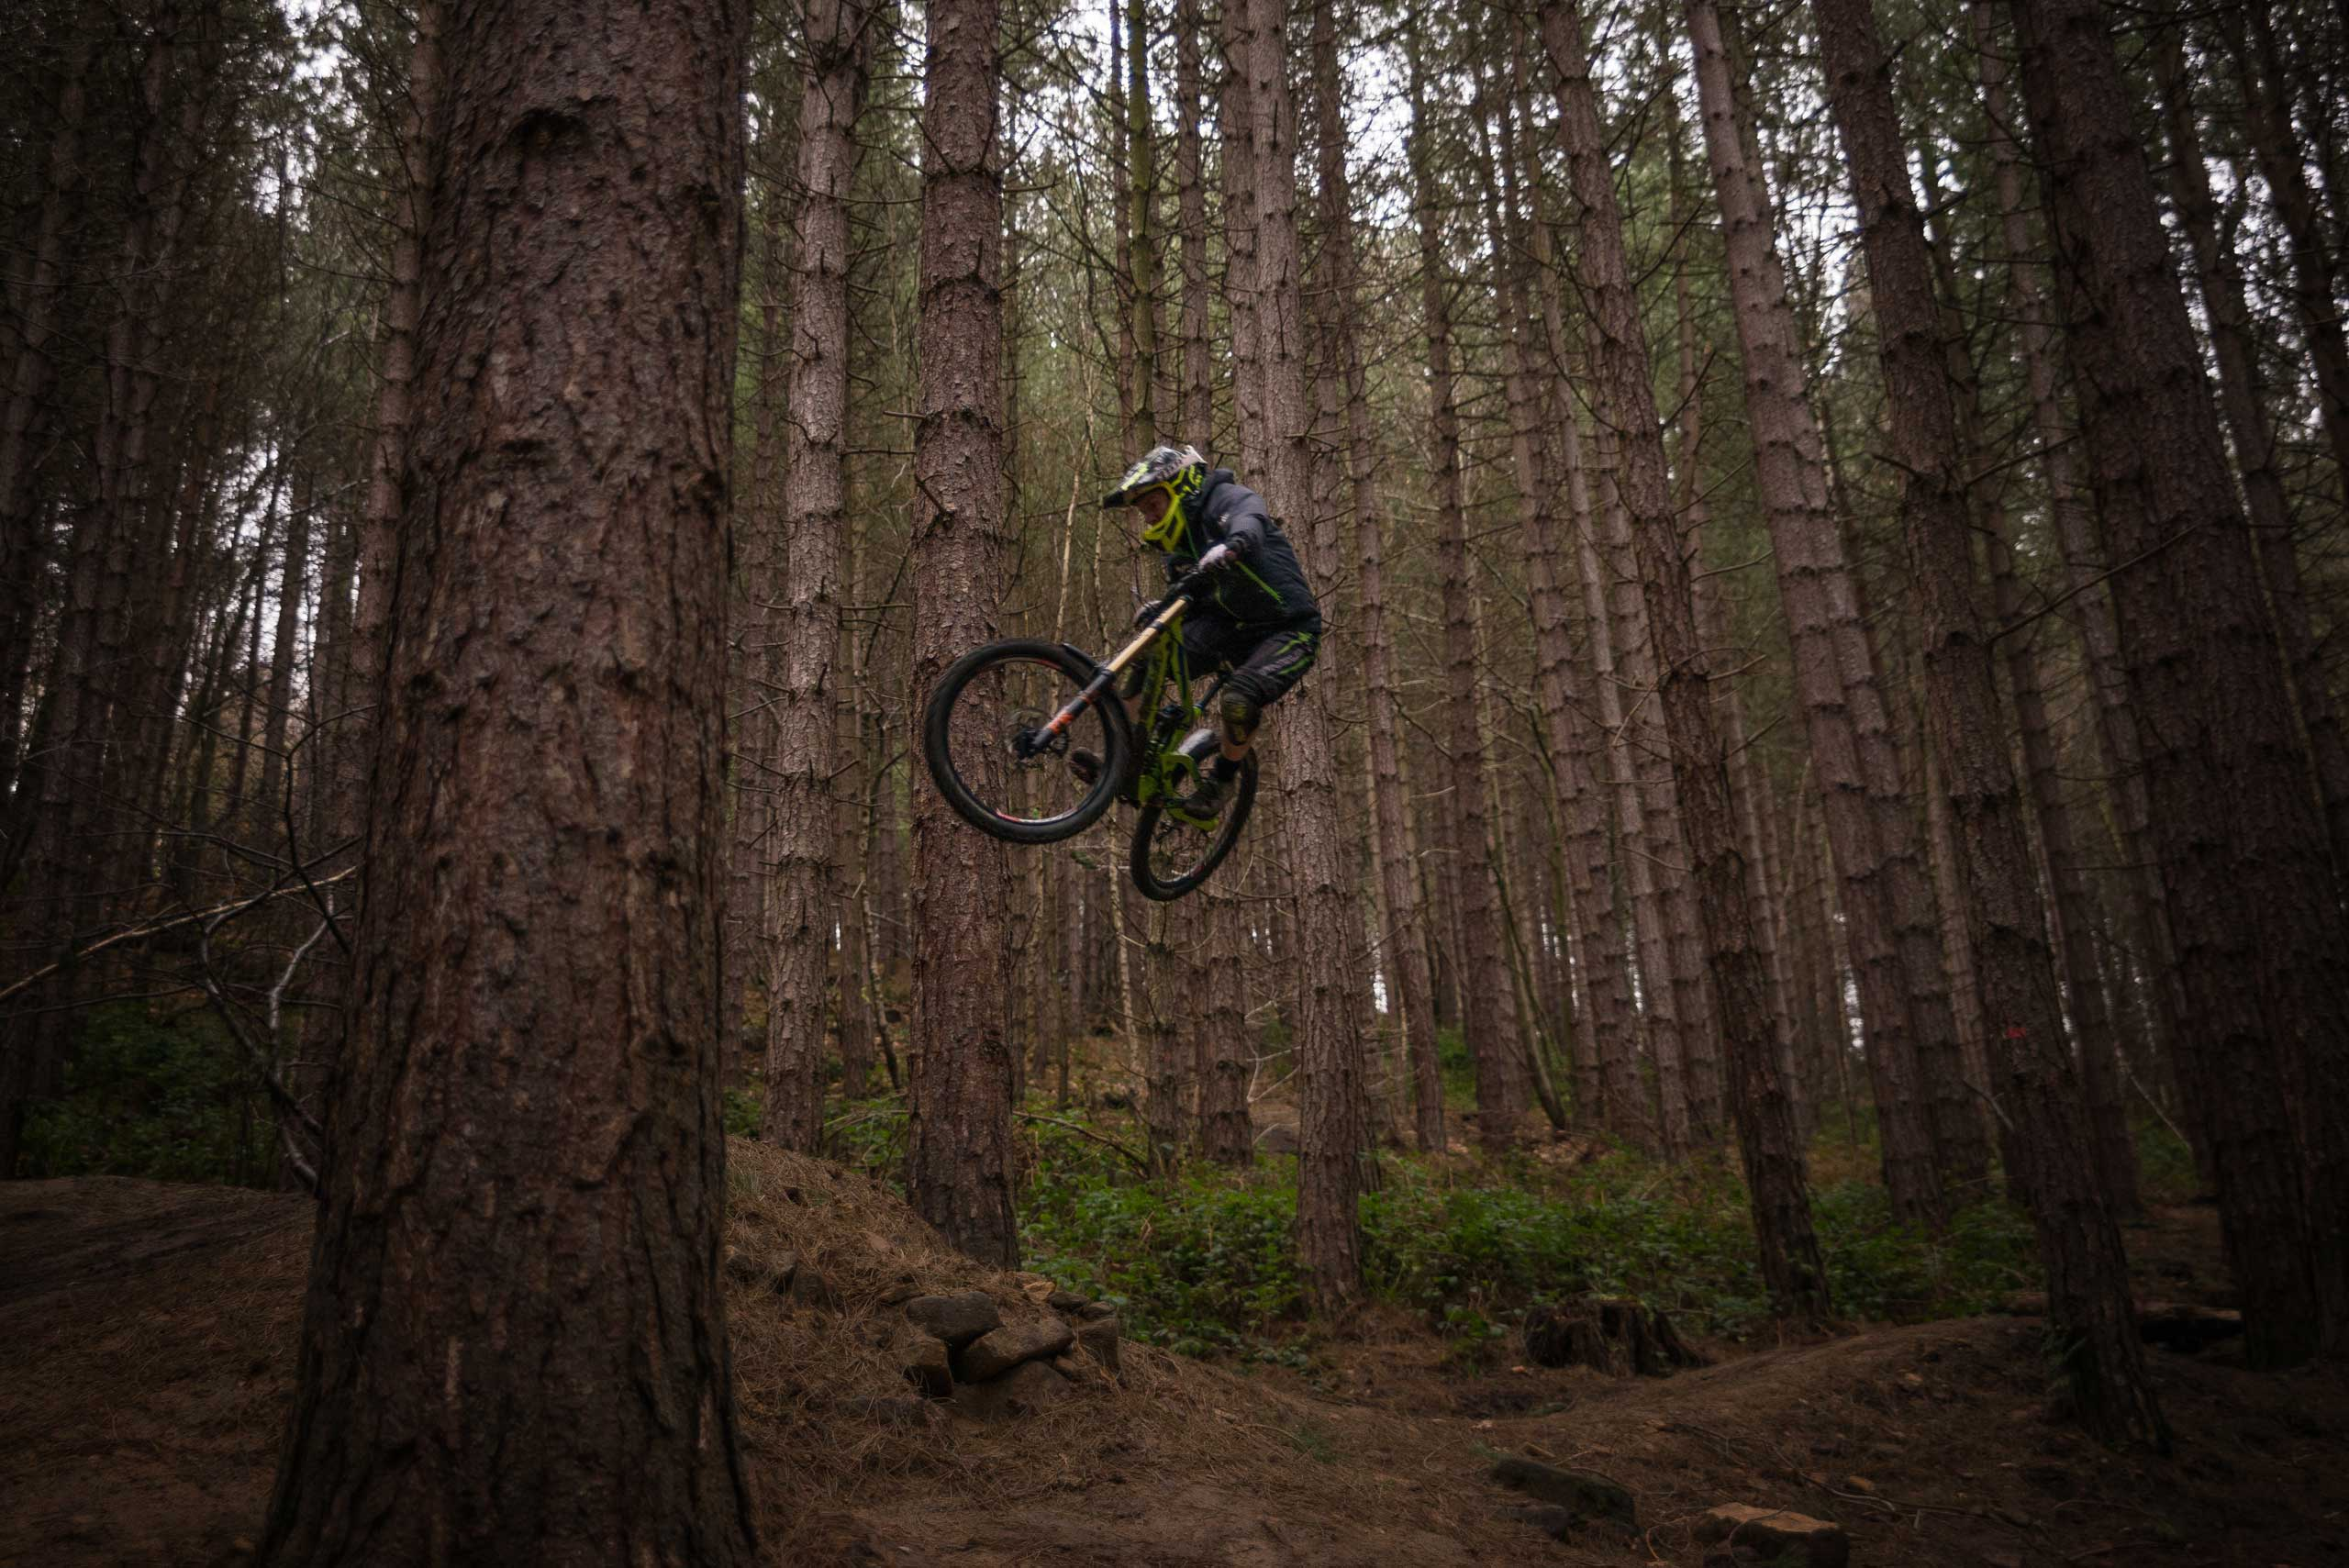 'Flying' at Wharncliffe Wood • Andrew Whitham • Keighley